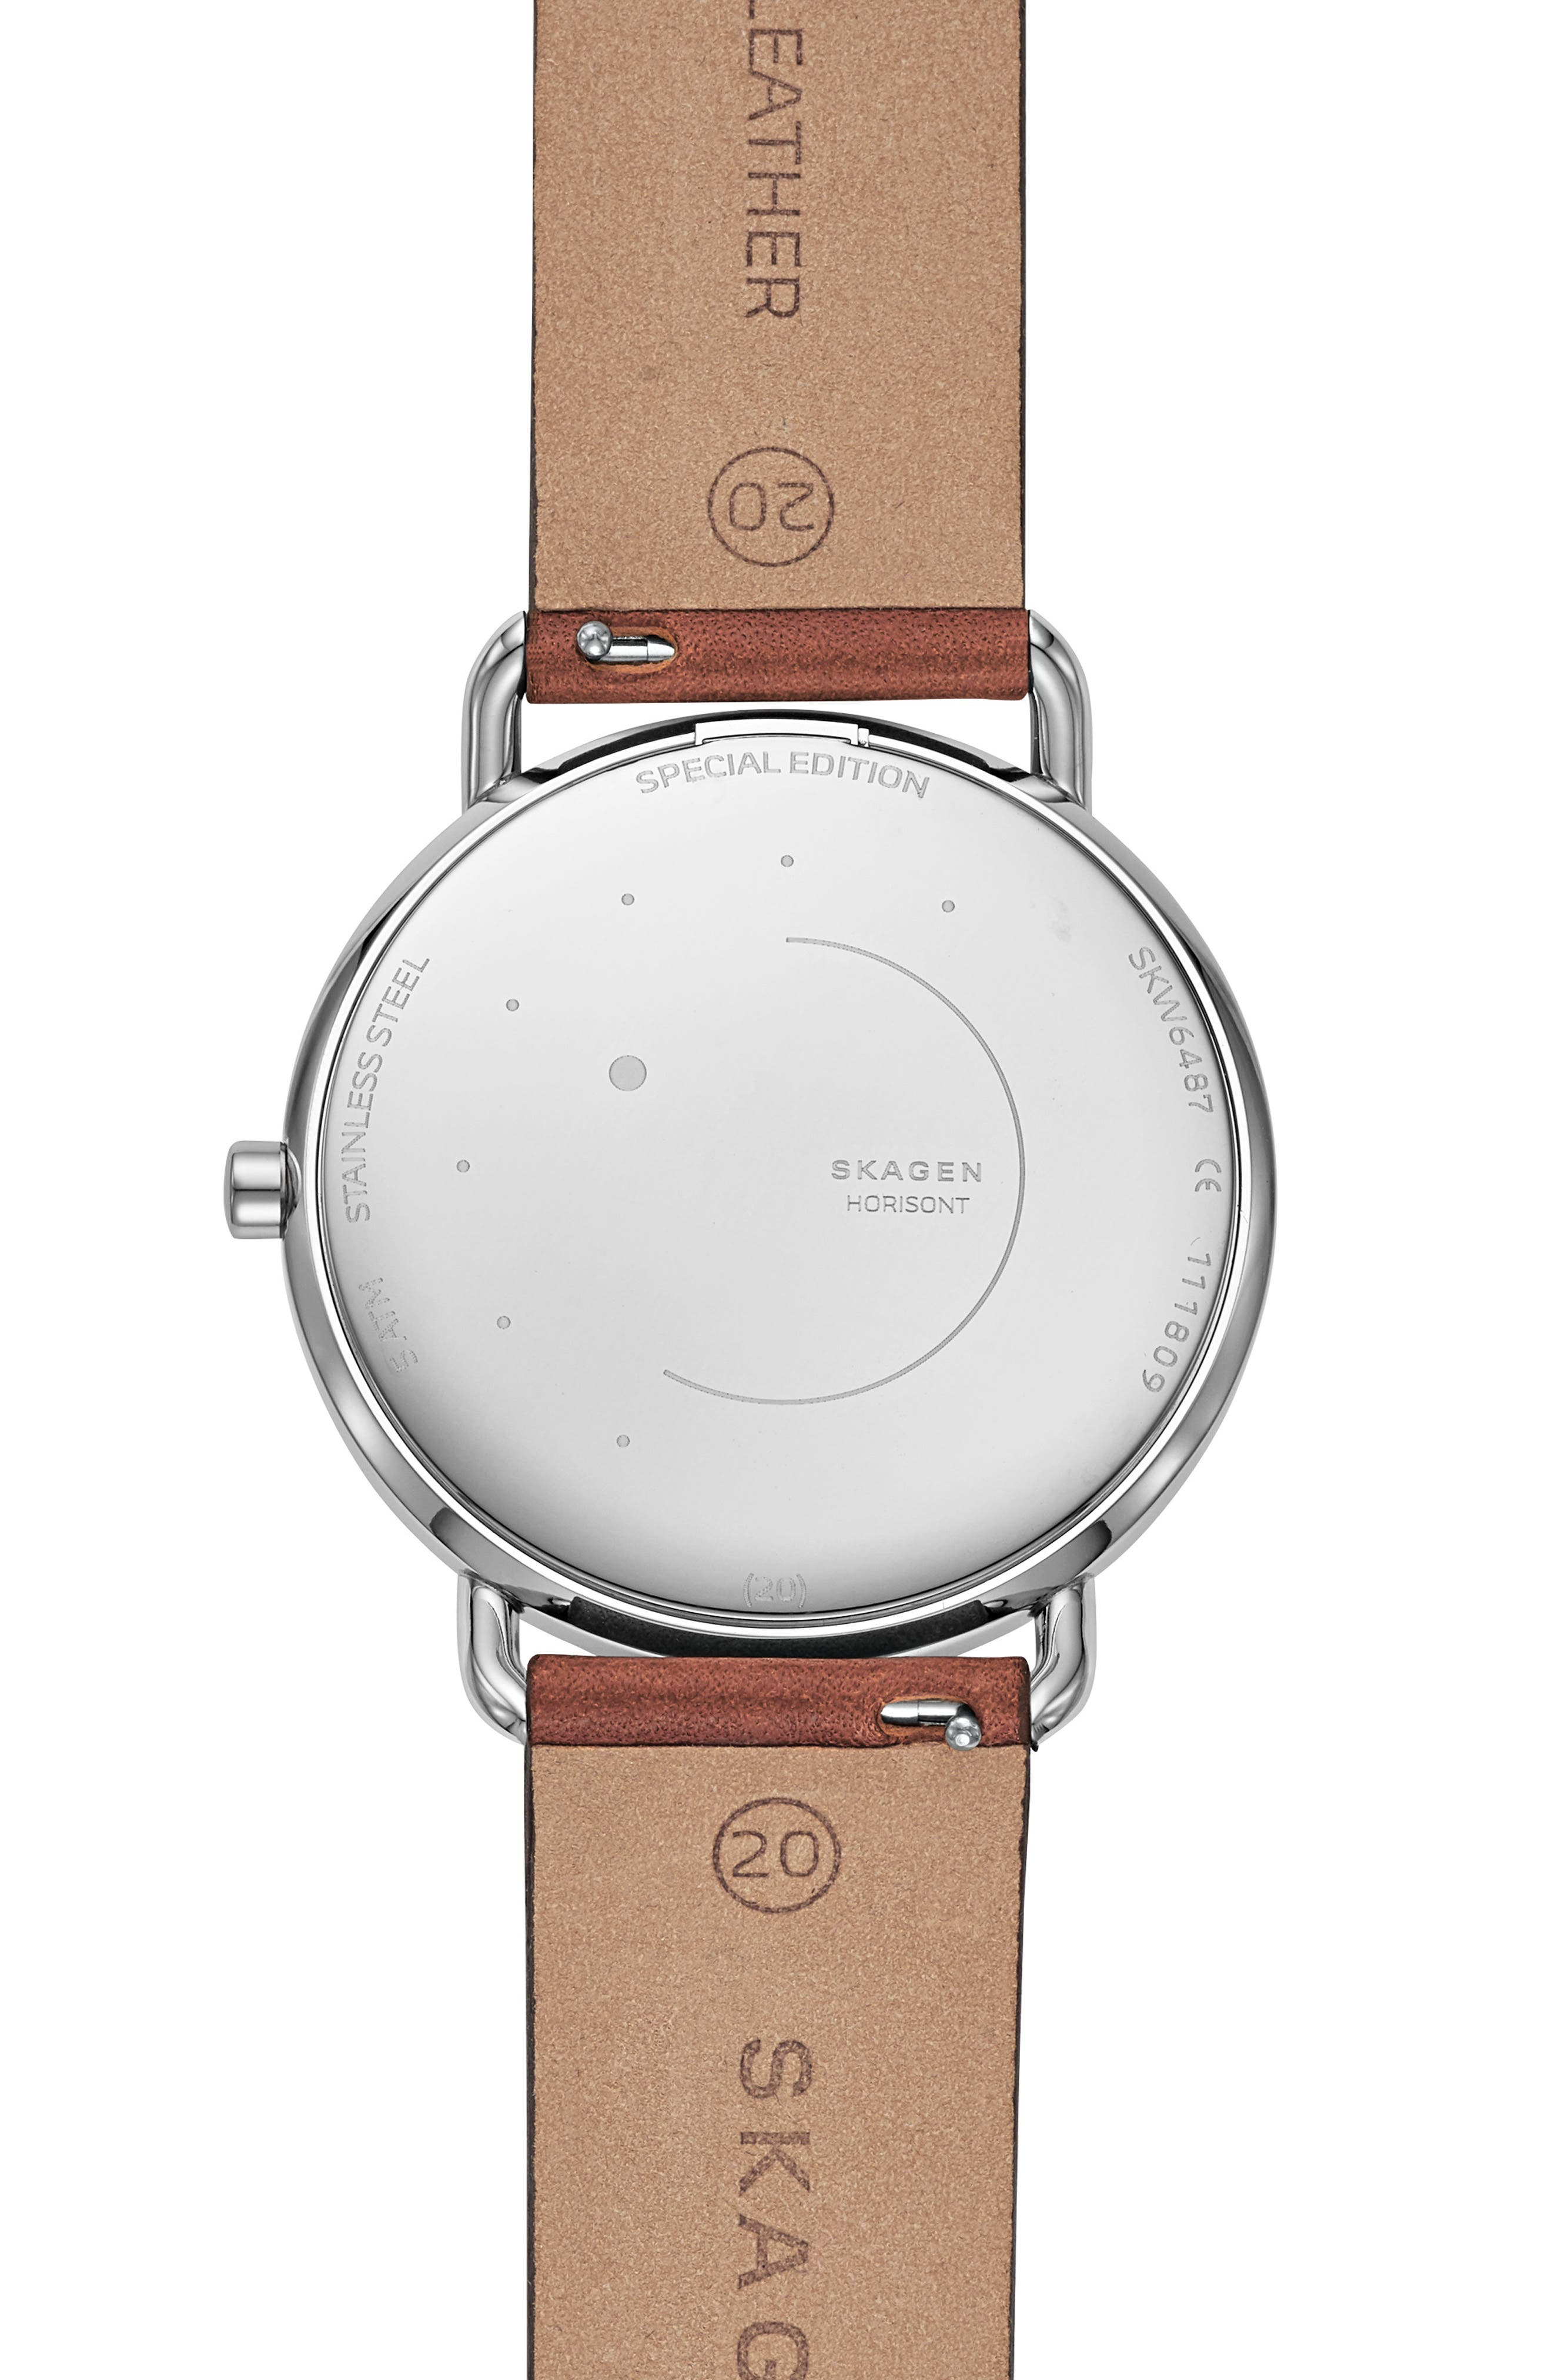 SKAGEN, Horisont Leather Strap Watch, 40mm, Alternate thumbnail 2, color, 200